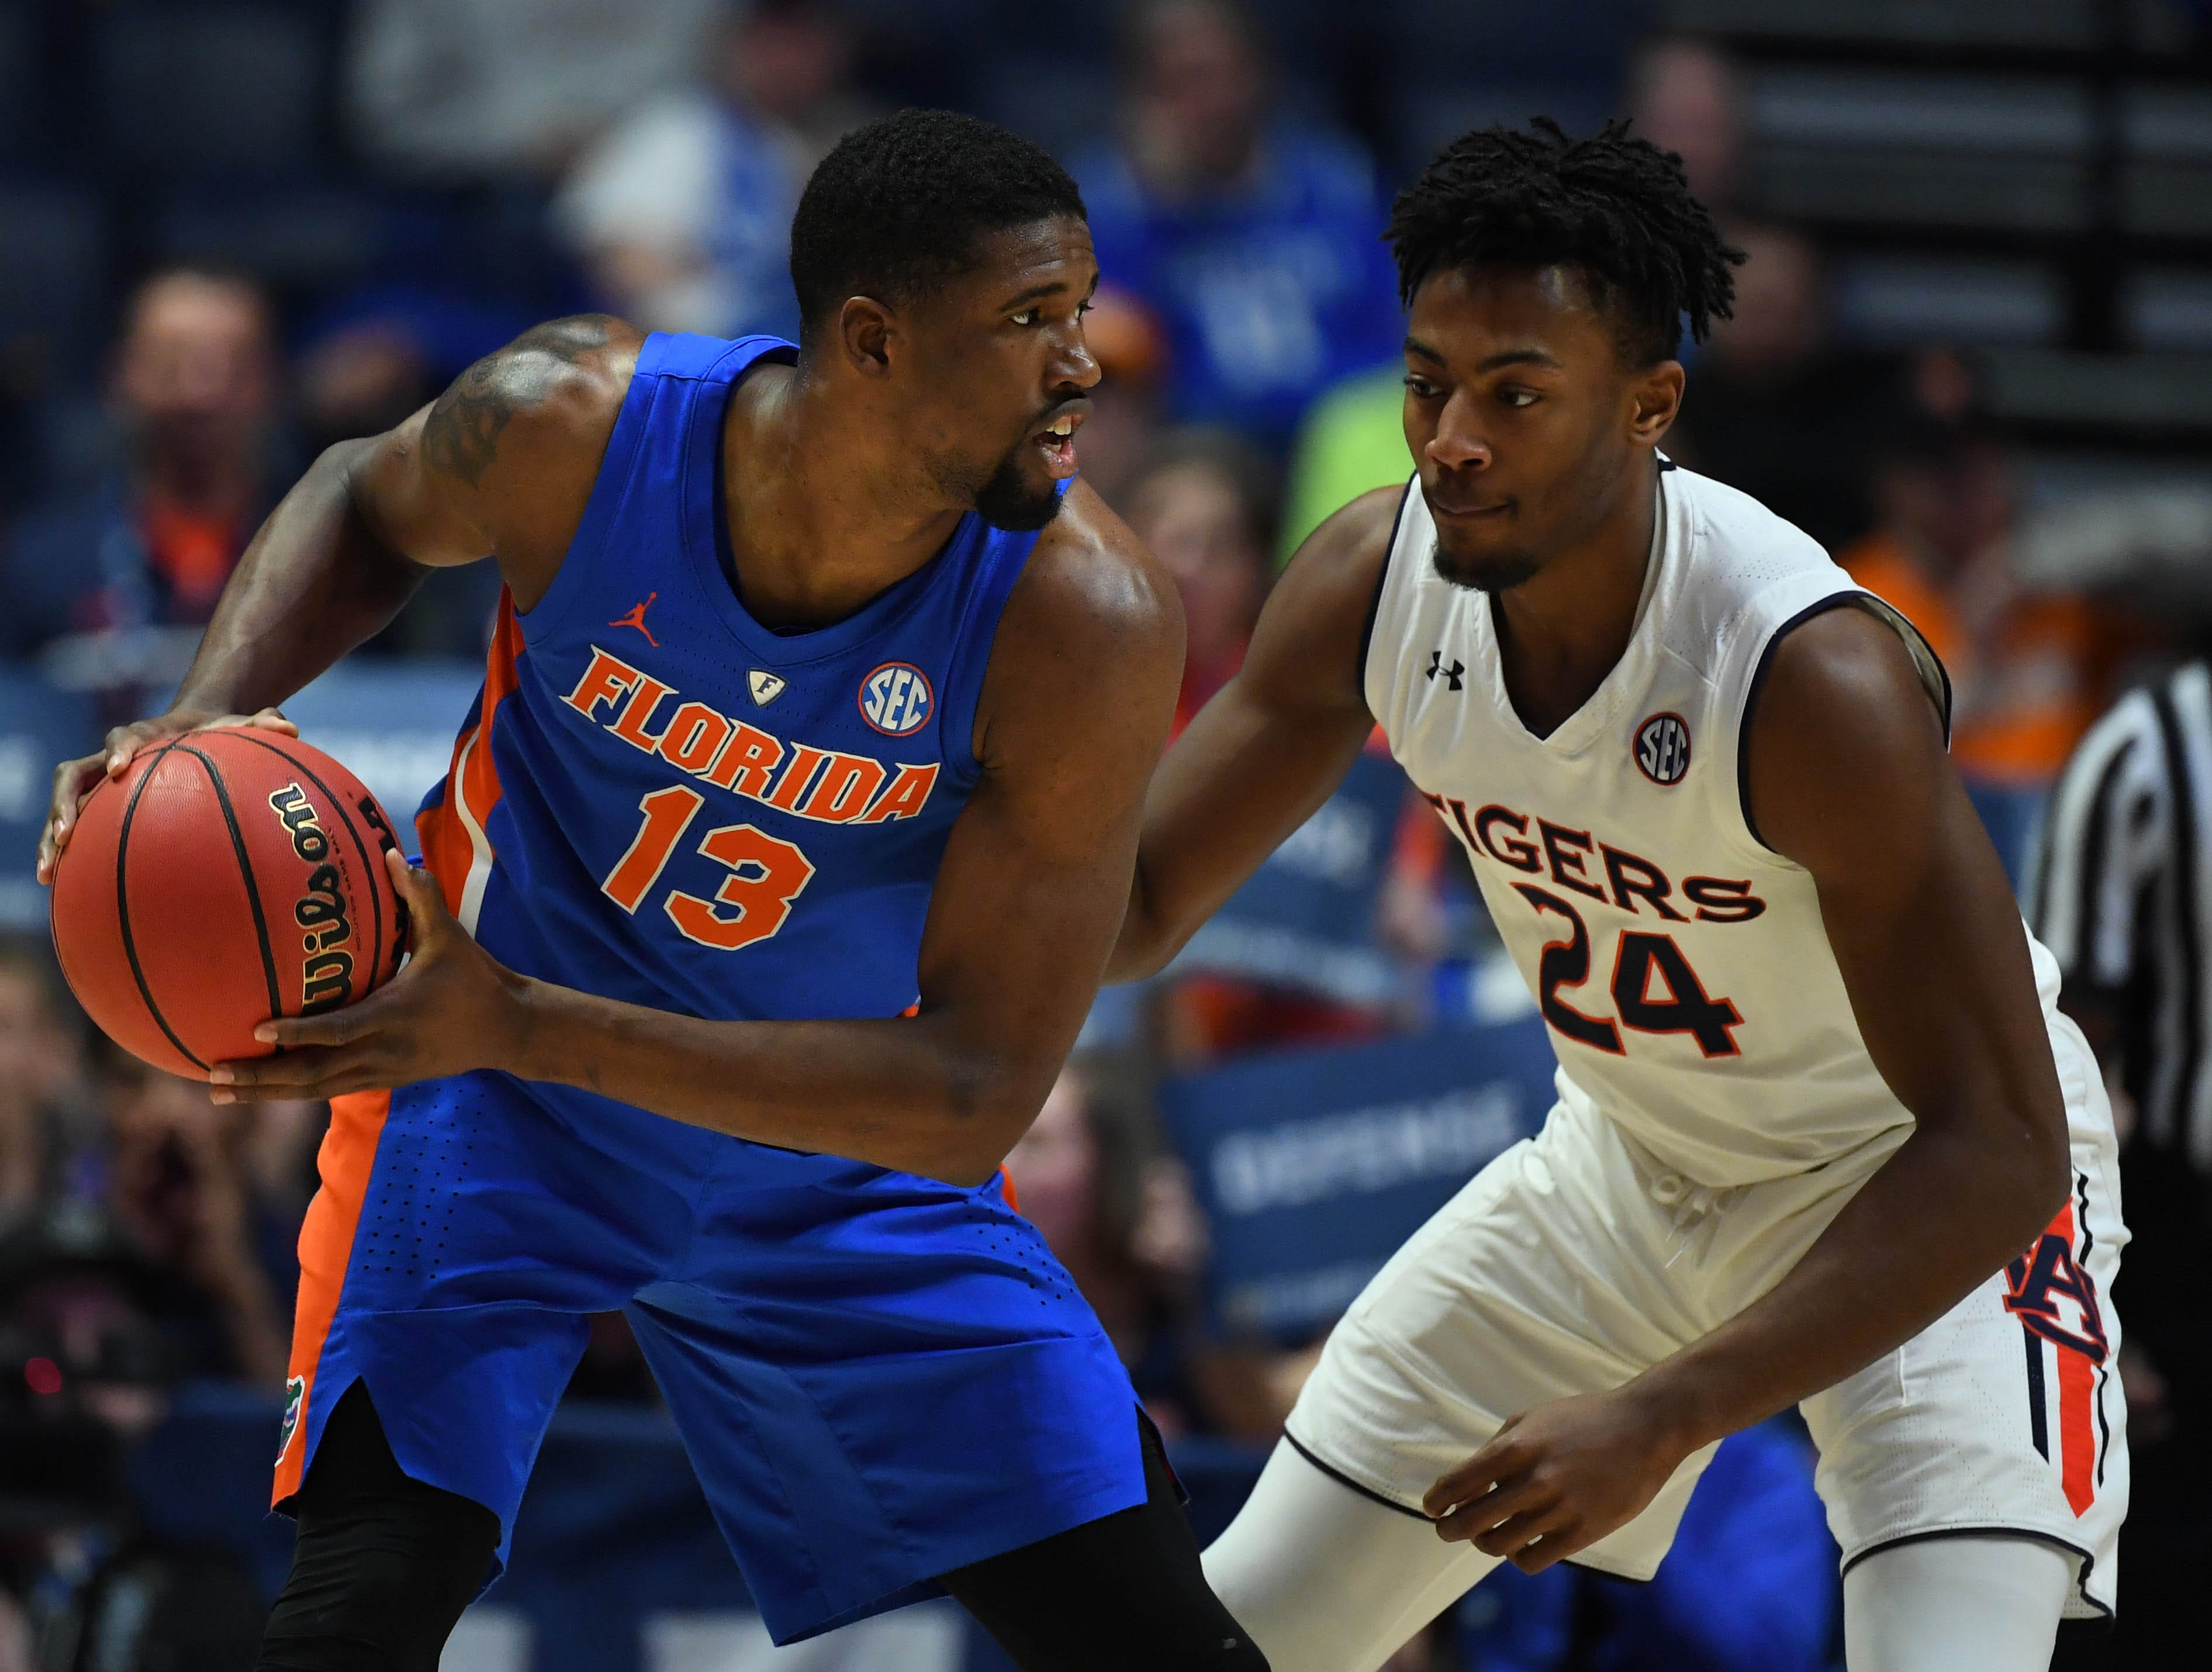 Mar 16, 2019; Nashville, TN, USA; Florida Gators center Kevarrius Hayes (13) works against Auburn Tigers forward Anfernee McLemore (24) during the first half of the SEC conference tournament at Bridgestone Arena. Mandatory Credit: Christopher Hanewinckel-USA TODAY Sports